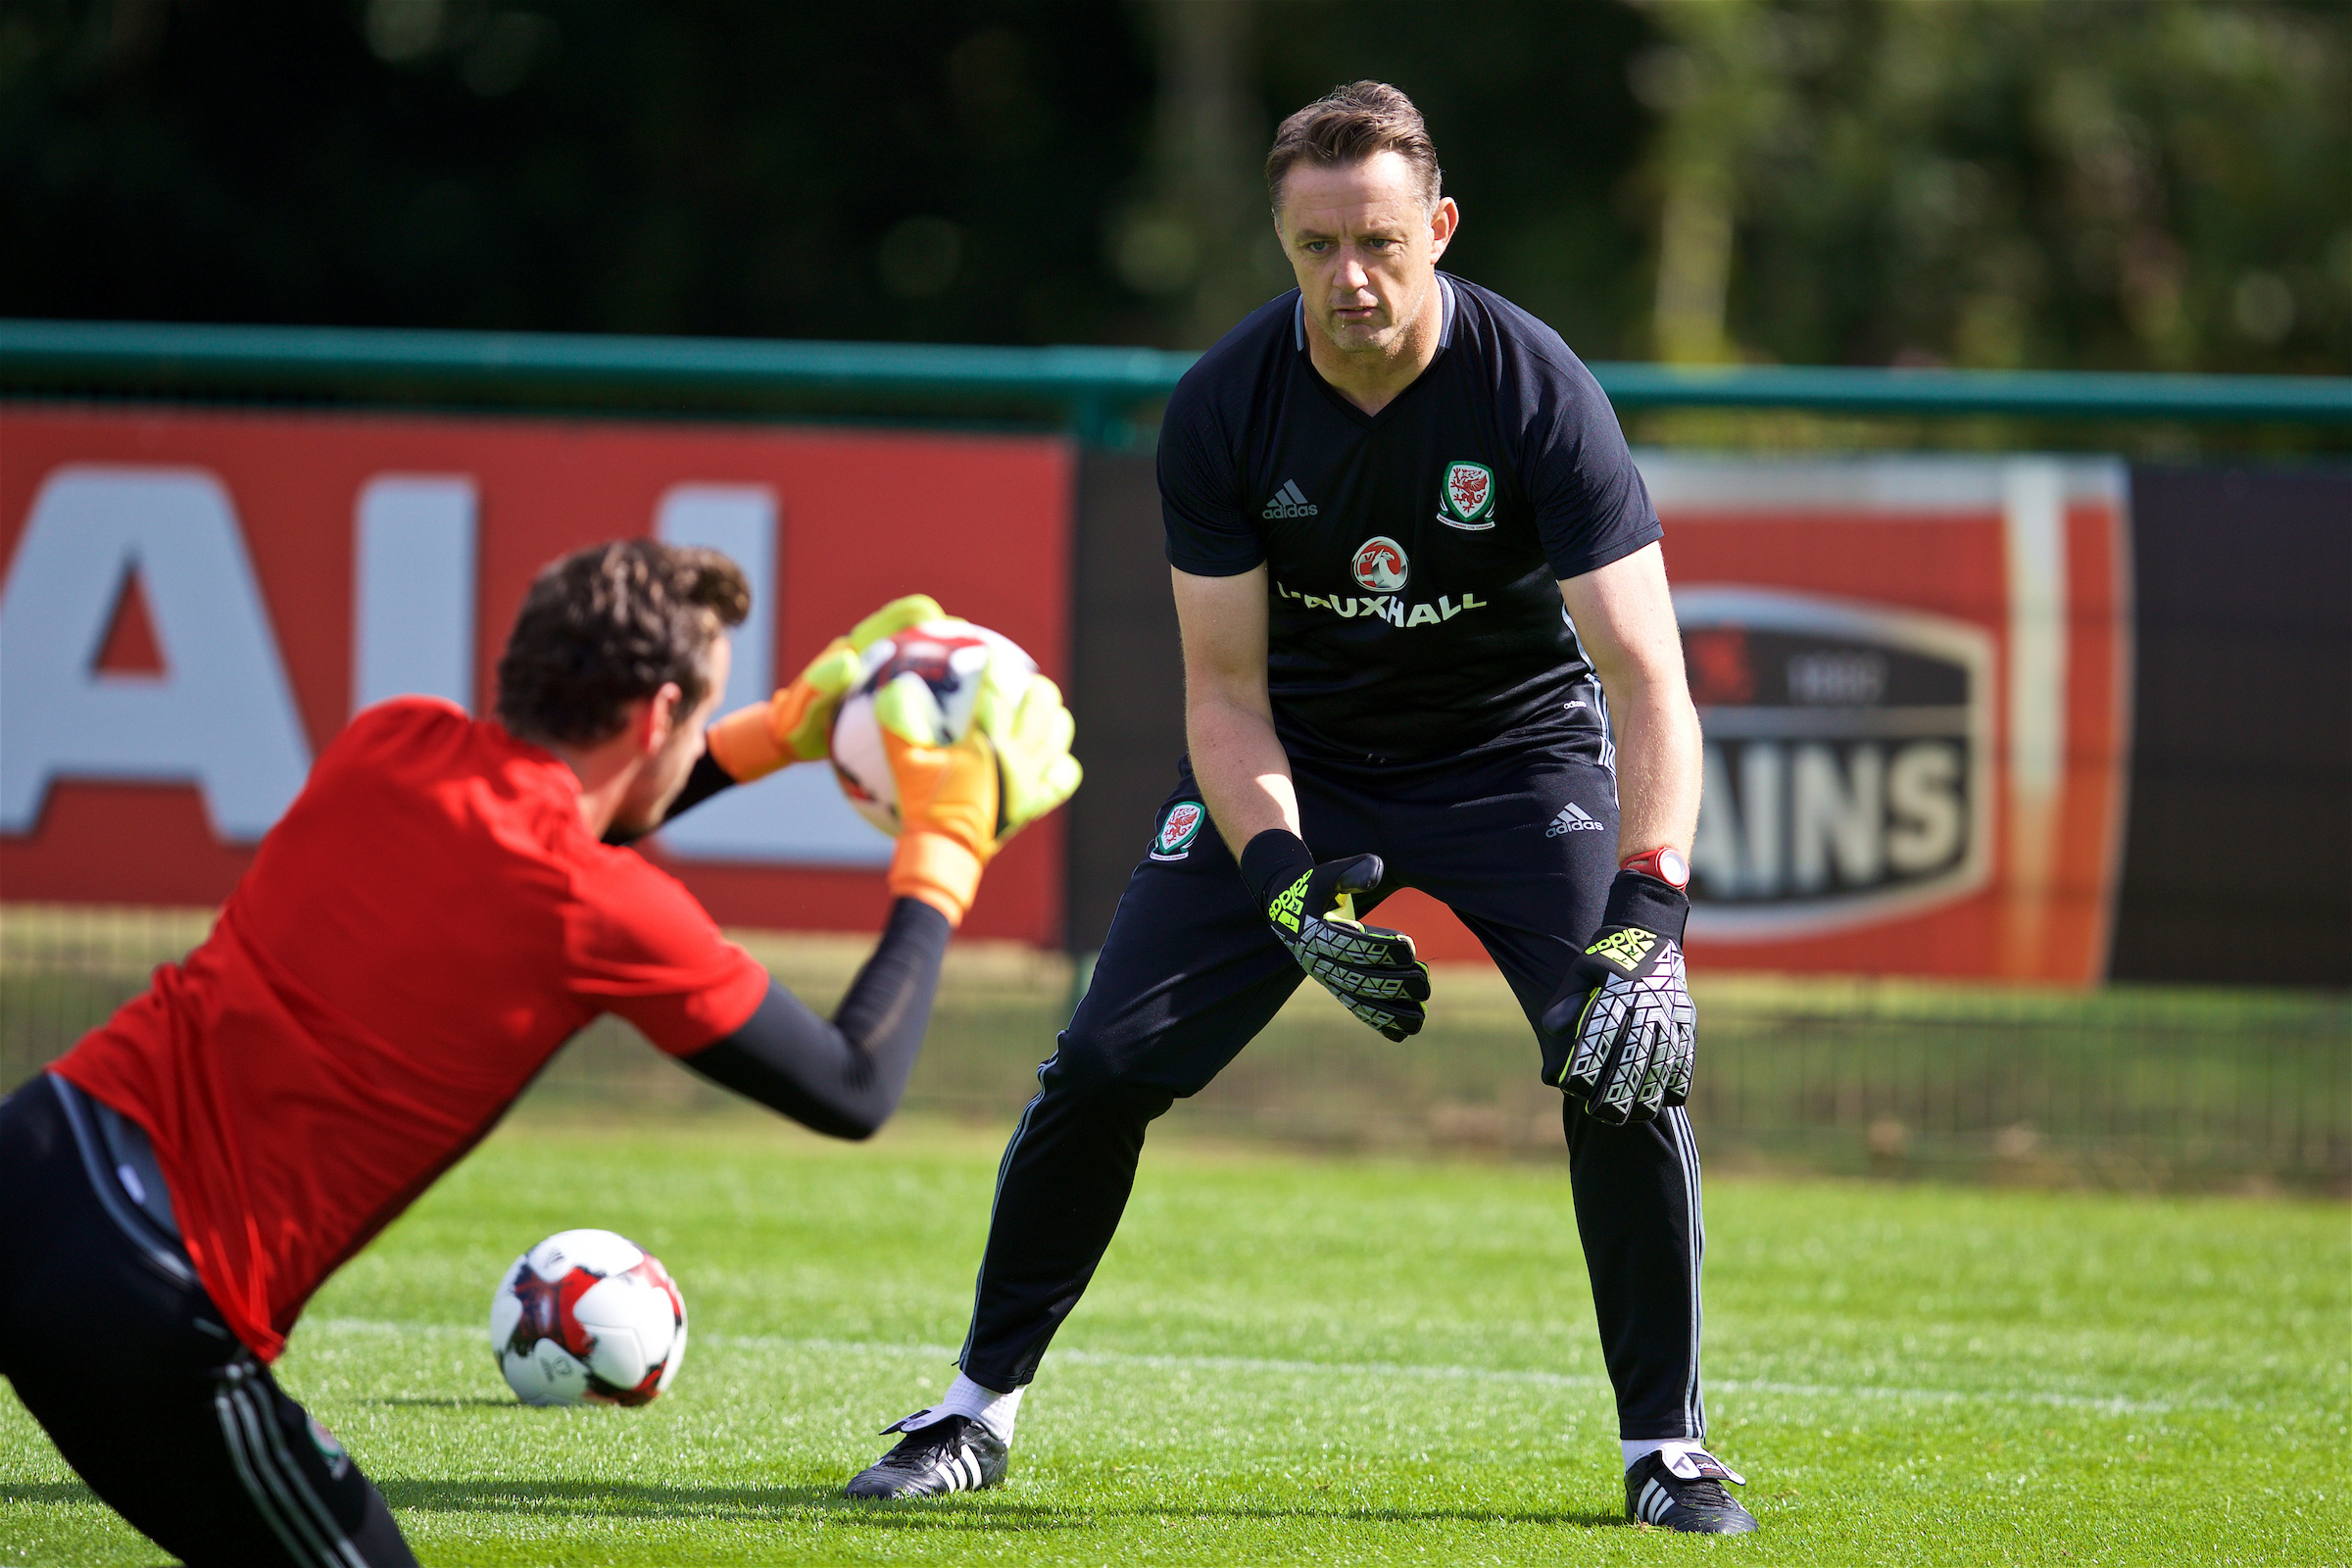 How Wales is trying to develop the next Wayne Hennessey or Danny Ward